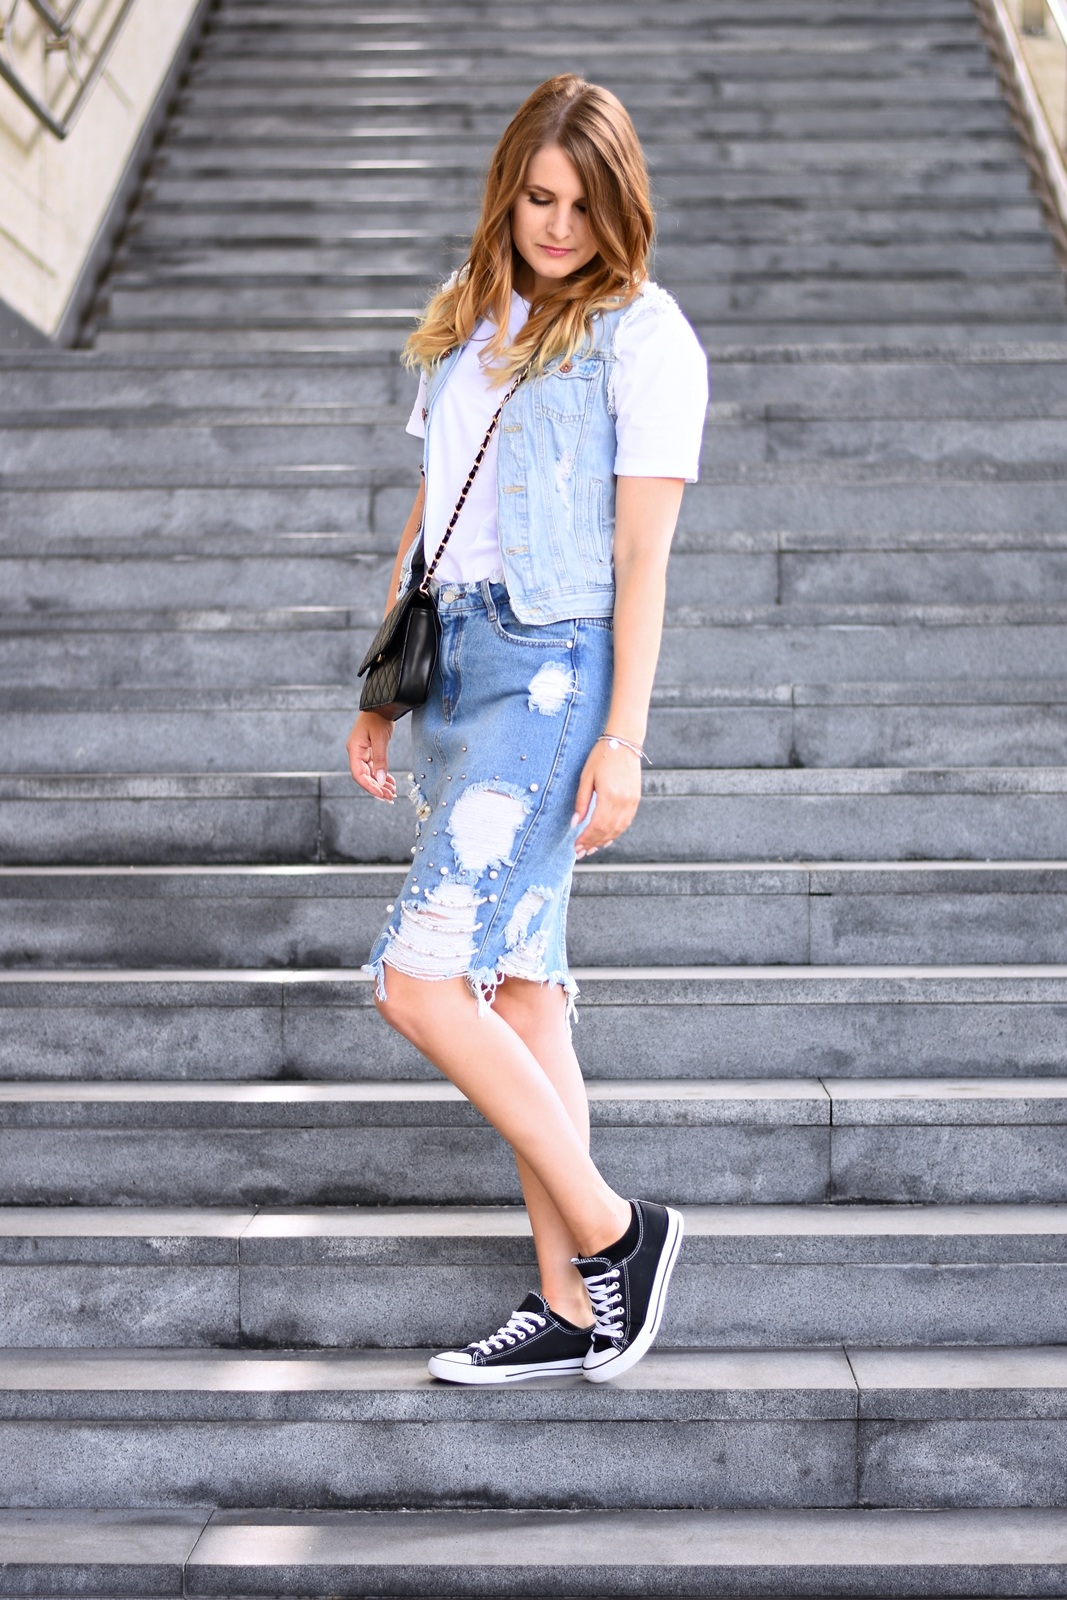 Denim on Denim - so stylst du den double Denim Trend richtig - Jeans Kombination - distressed Jeansrock mit Perlen - Jeansjacke - Chucks - crossbody Bag - weißen Body kombinieren - Style - Mode - Fashion - Look - Streetstyle - Alltagslook - styling Tipps - - Fashionladyloves by Tamara Wagner - Fashionblog - Mode Blog - Lifestyleblog aus Graz Österreich